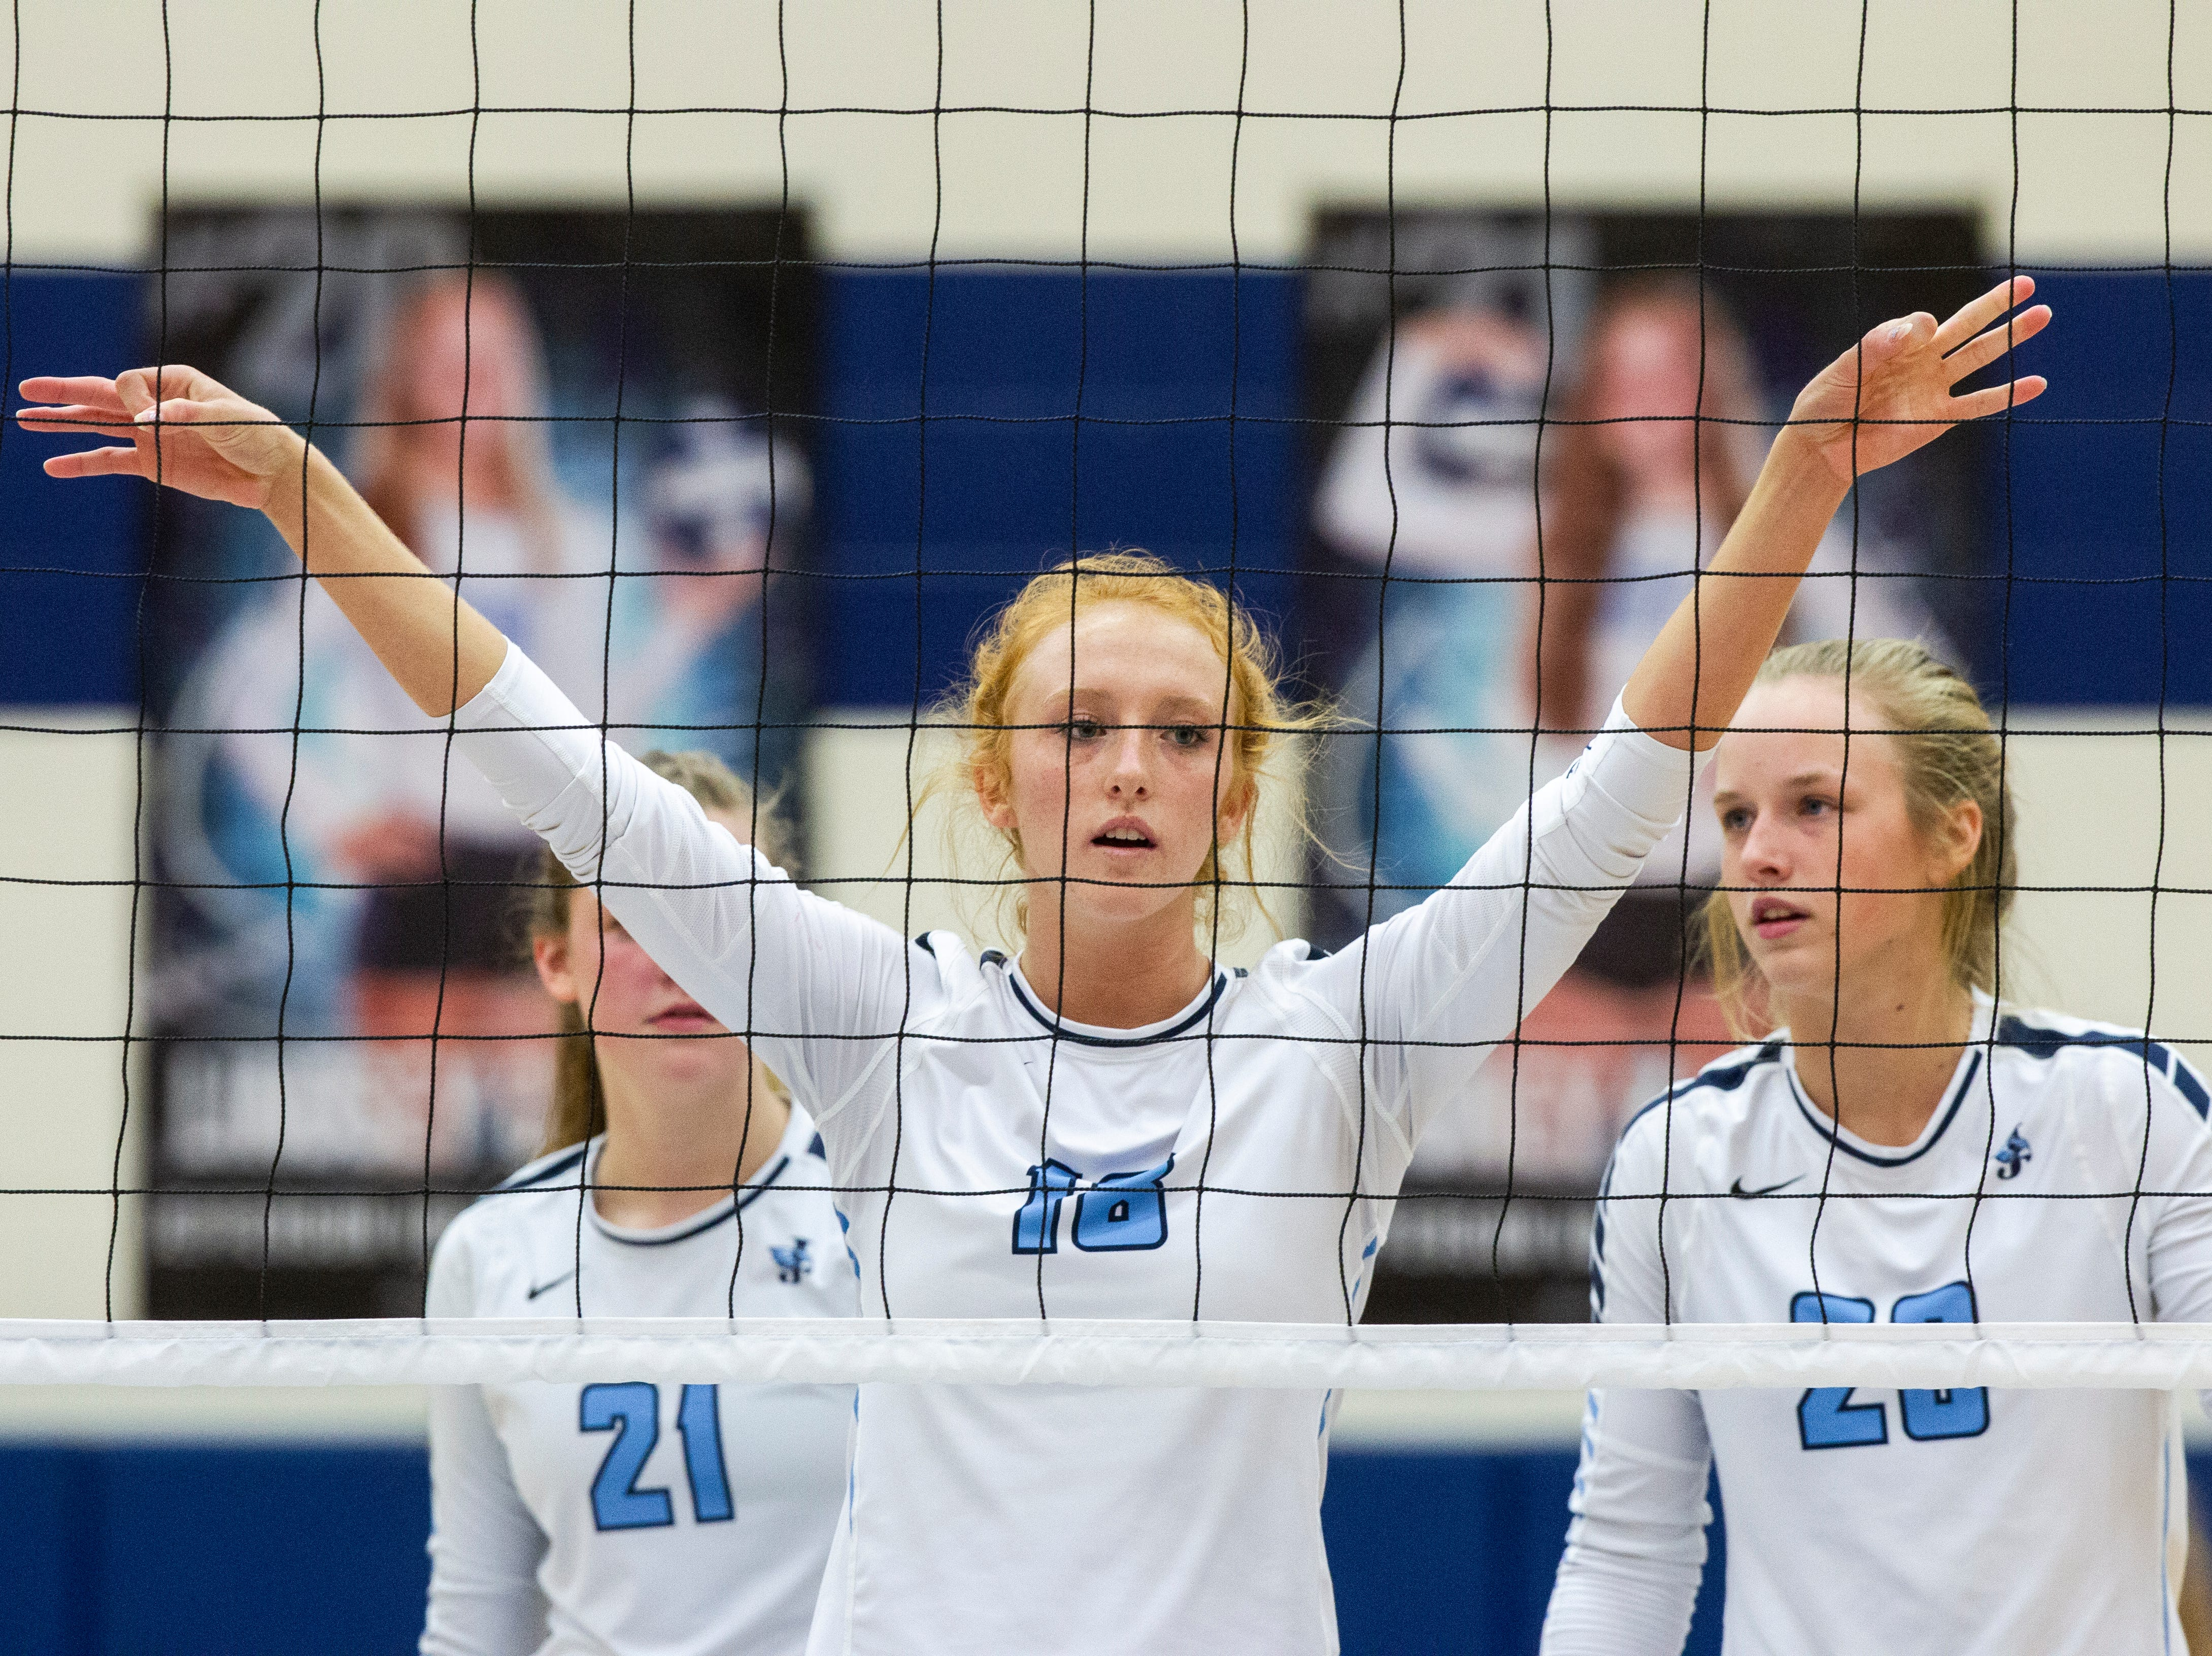 Cedar Rapids Jefferson's Maggie Peters (18) gets her hands up before a serve during a Class 5A volleyball regional final game on Monday, Oct. 29, 2018, at Jefferson High School in Cedar Rapids.